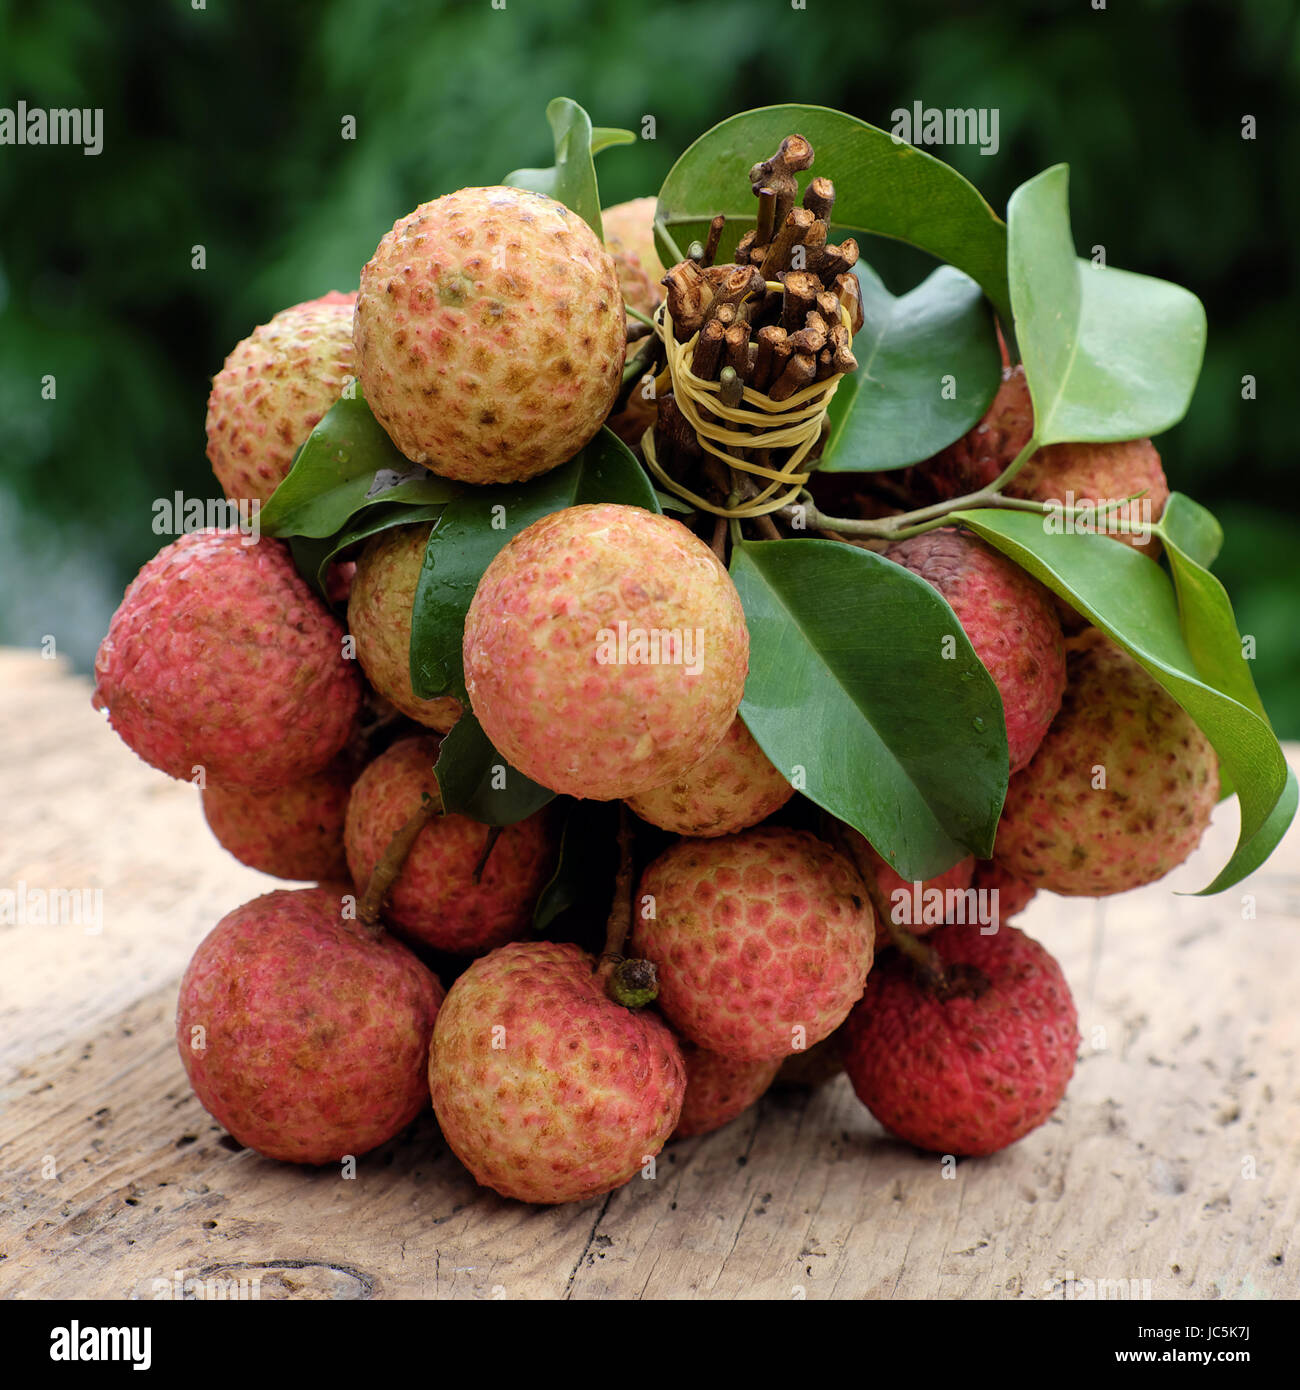 Vietnam fruit, litchi or lychee, a tropical fruits that delicious, sweet at Bac Giang, bunch of vai thieu on green - Stock Image